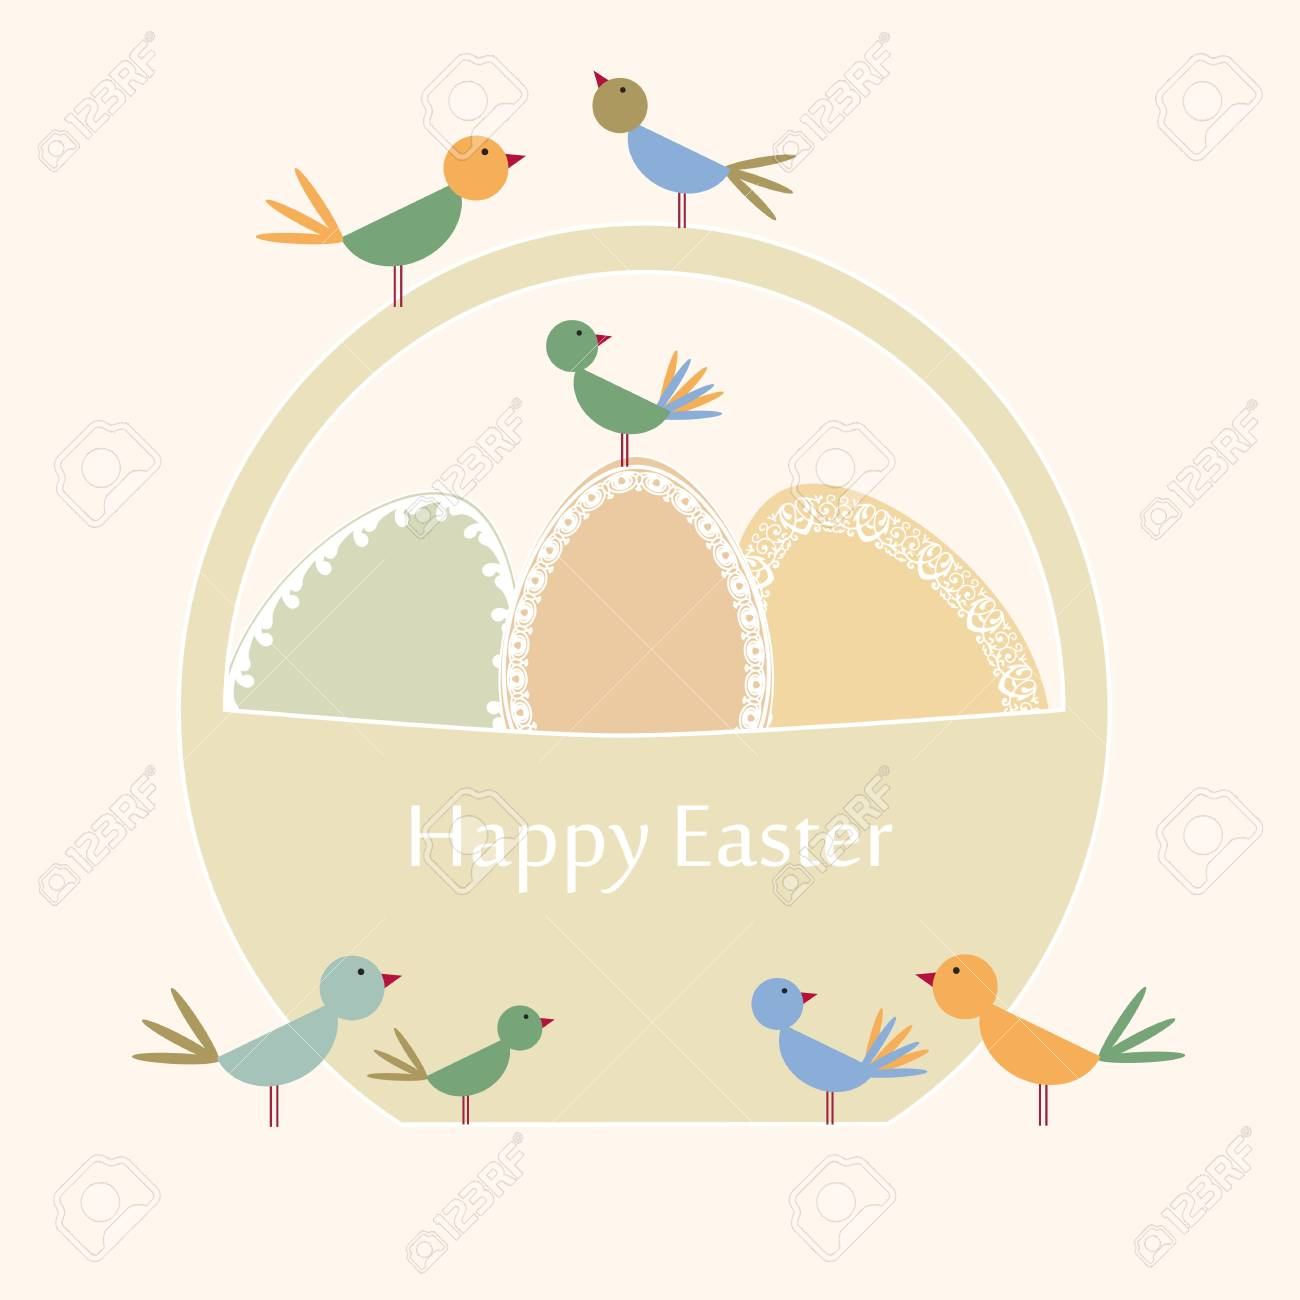 Abstract easter card with eggs and birds Stock Vector - 17223055